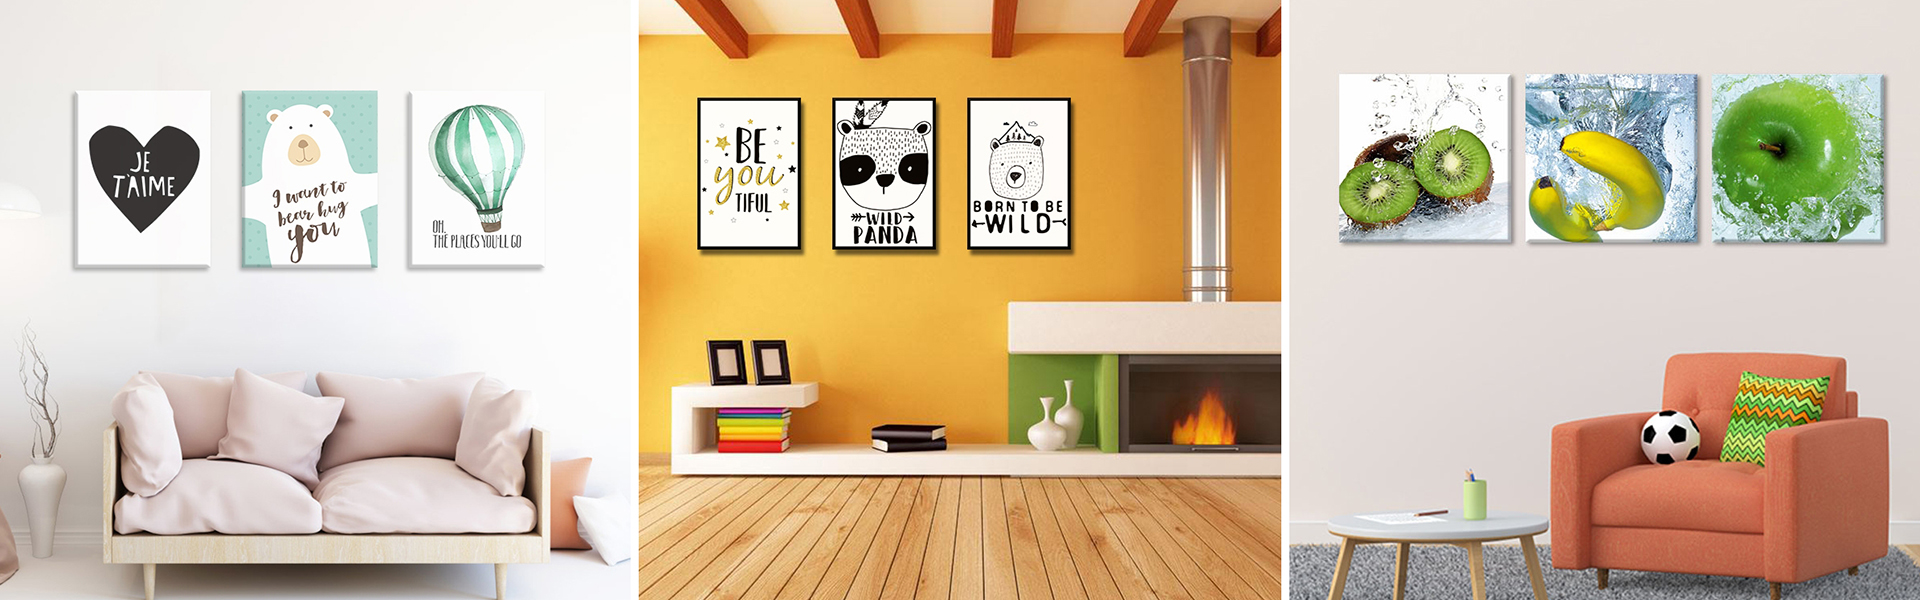 PHOPIN Wall Art Store - Small Orders Online Store, Hot Selling and ...